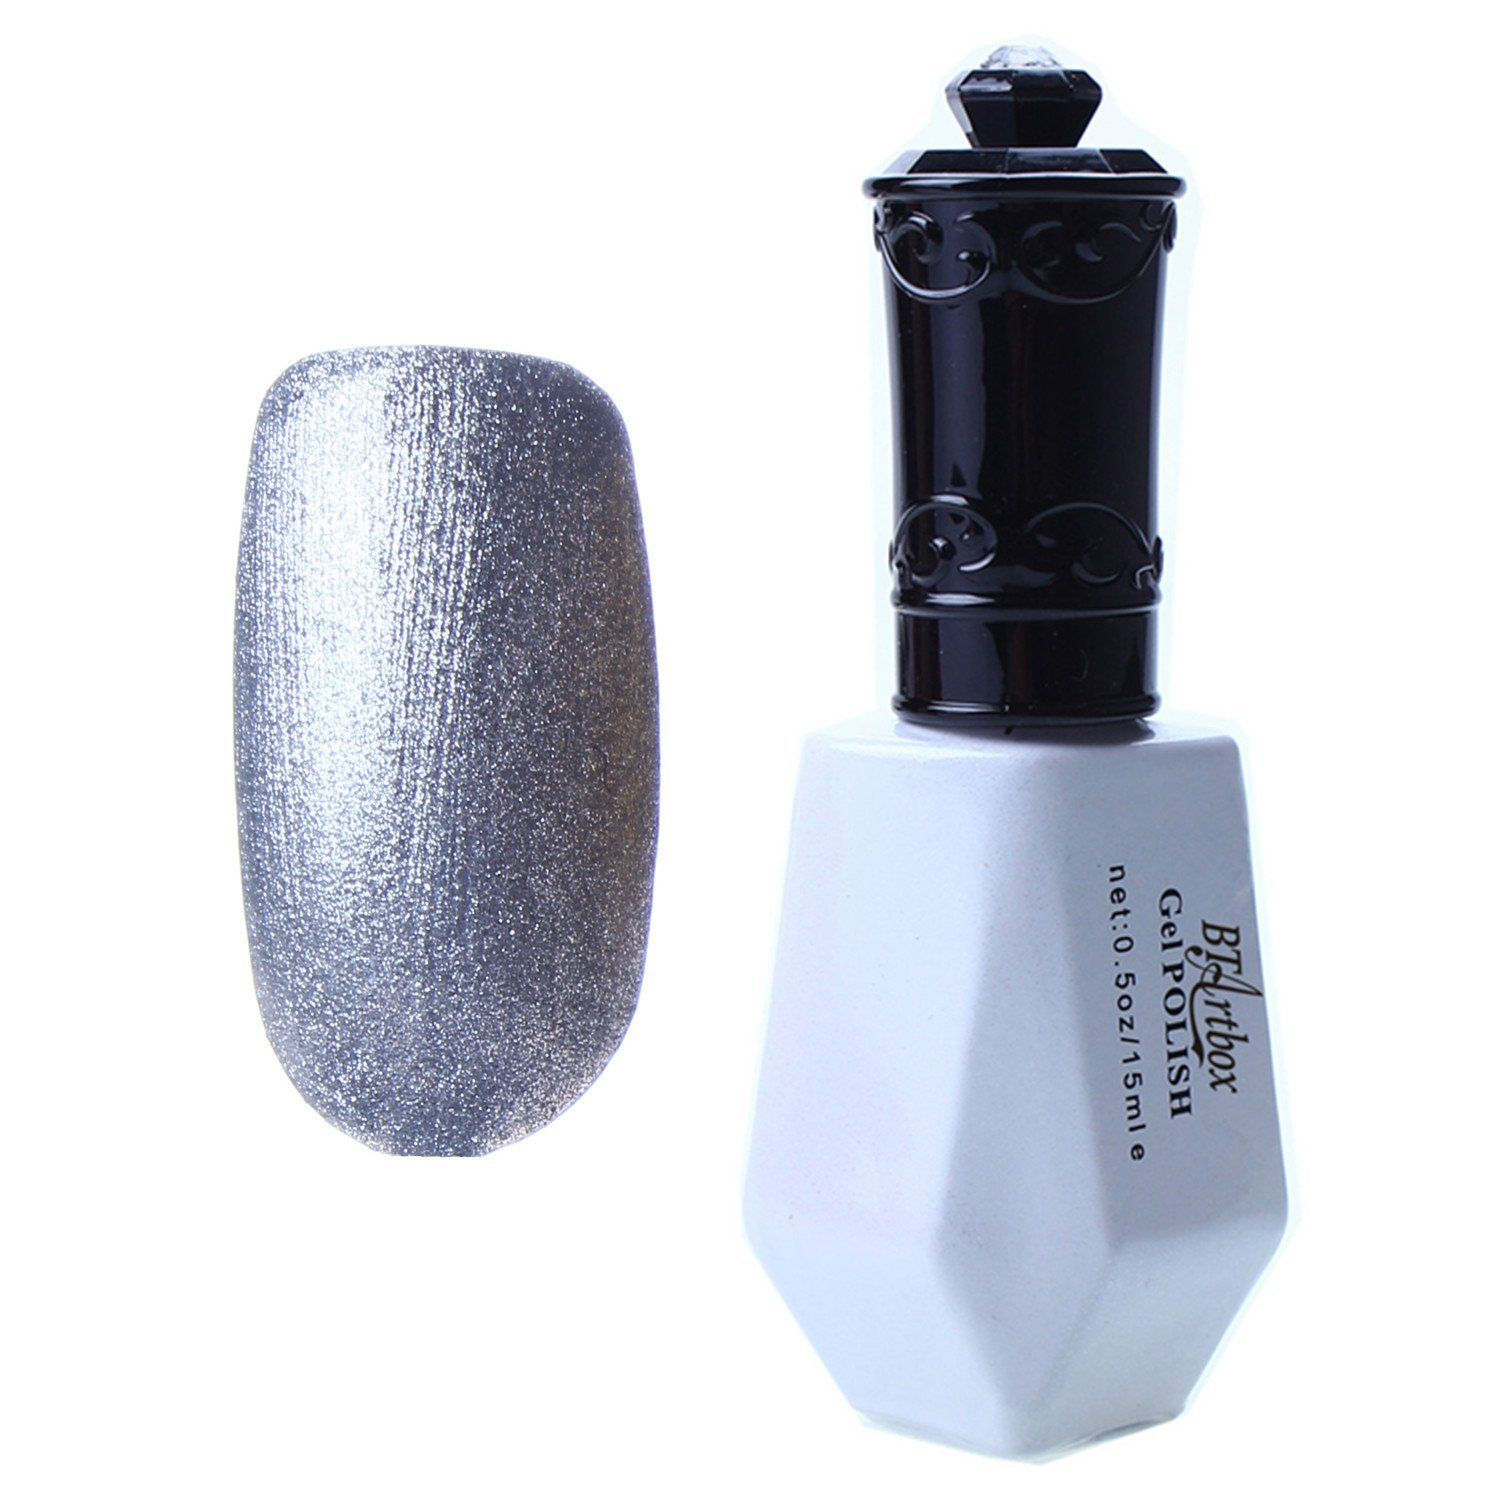 BTArtbox New Trendy Crackle Style Nail Art Polish Base Gel UV LED Light Manicure Collection Color Silver ** Find out more about the great product at the image link.